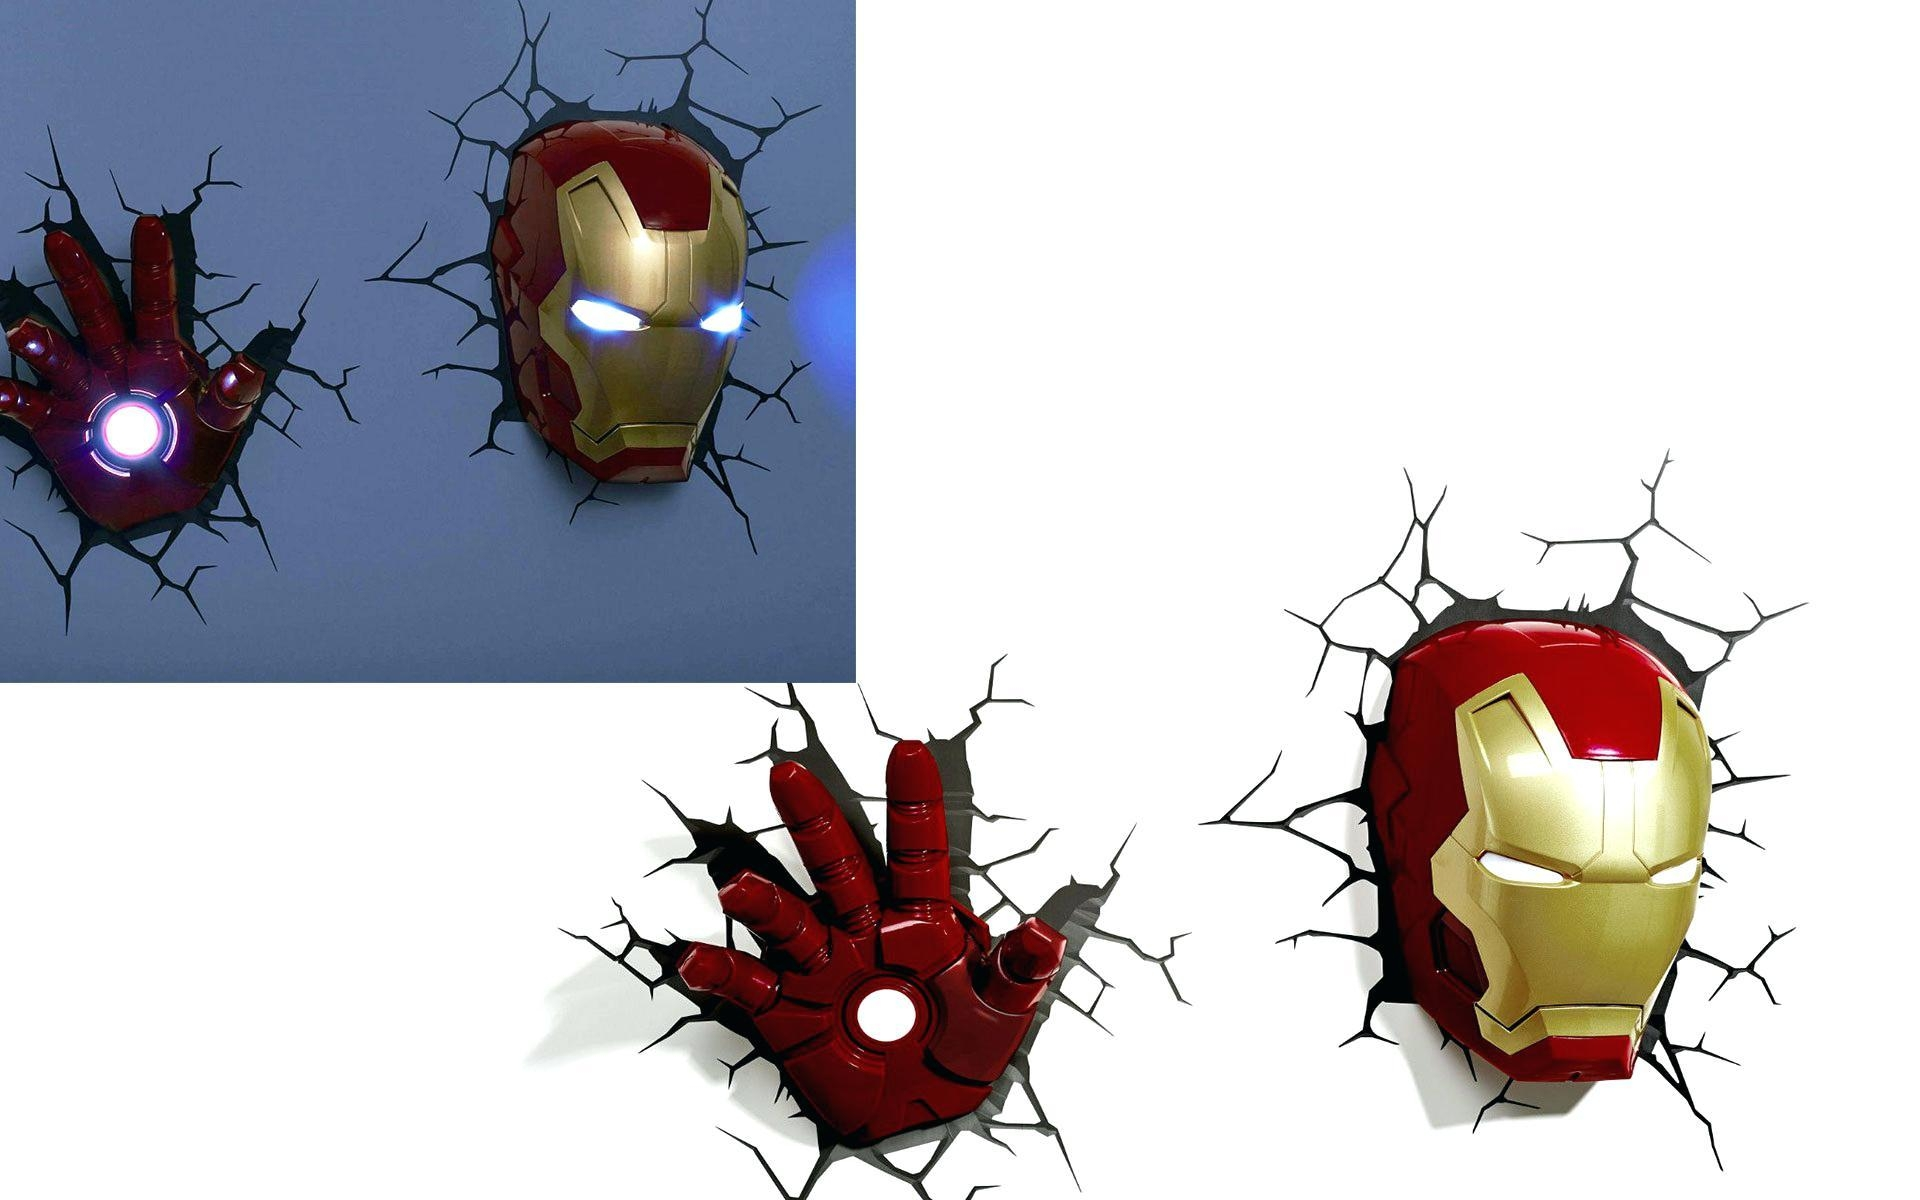 Articles With The Avengers 3D Wall Art Nightlight – Iron Man Face Intended For The Avengers 3D Wall Art Nightlight (Image 9 of 20)